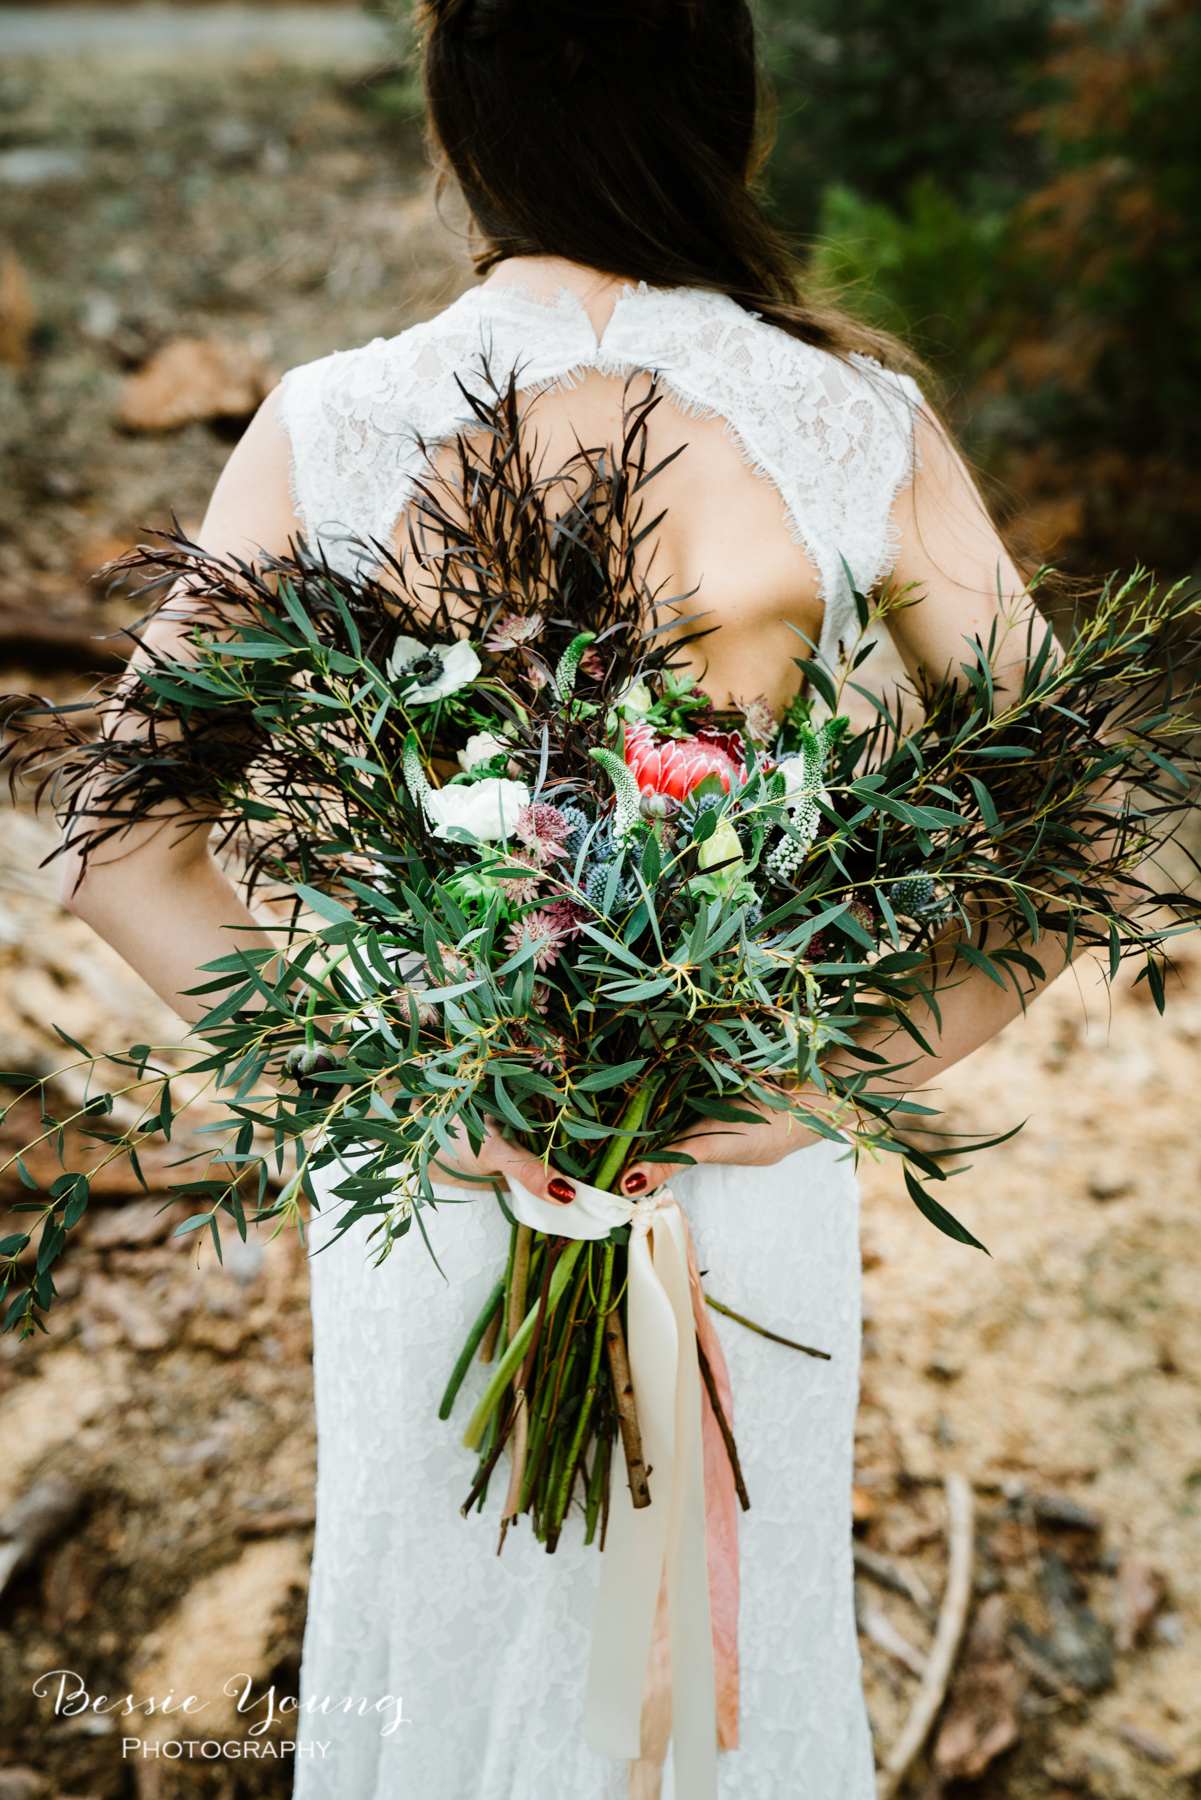 Wedding bouquet ideas  - by Bessie Young Photography-5.jpg